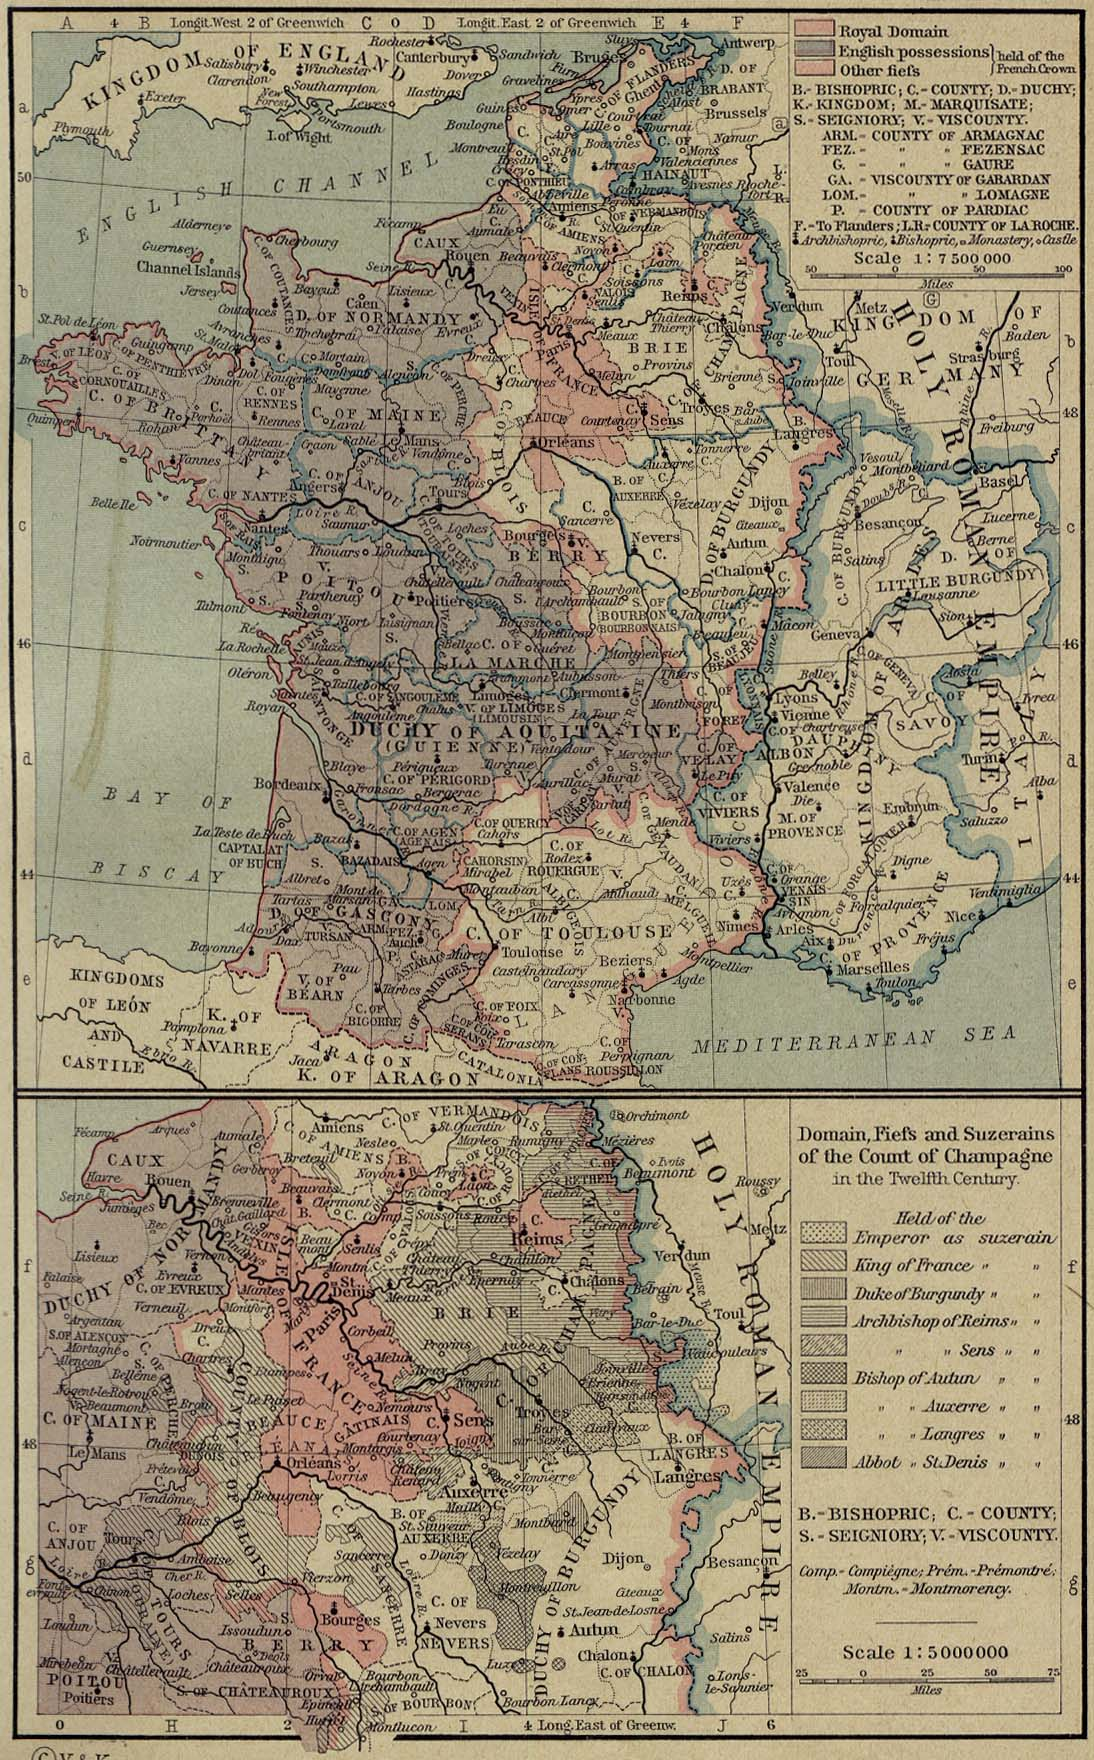 Map of France 1154-1184. Inset: Domain, Fiefs and Suzerains of the